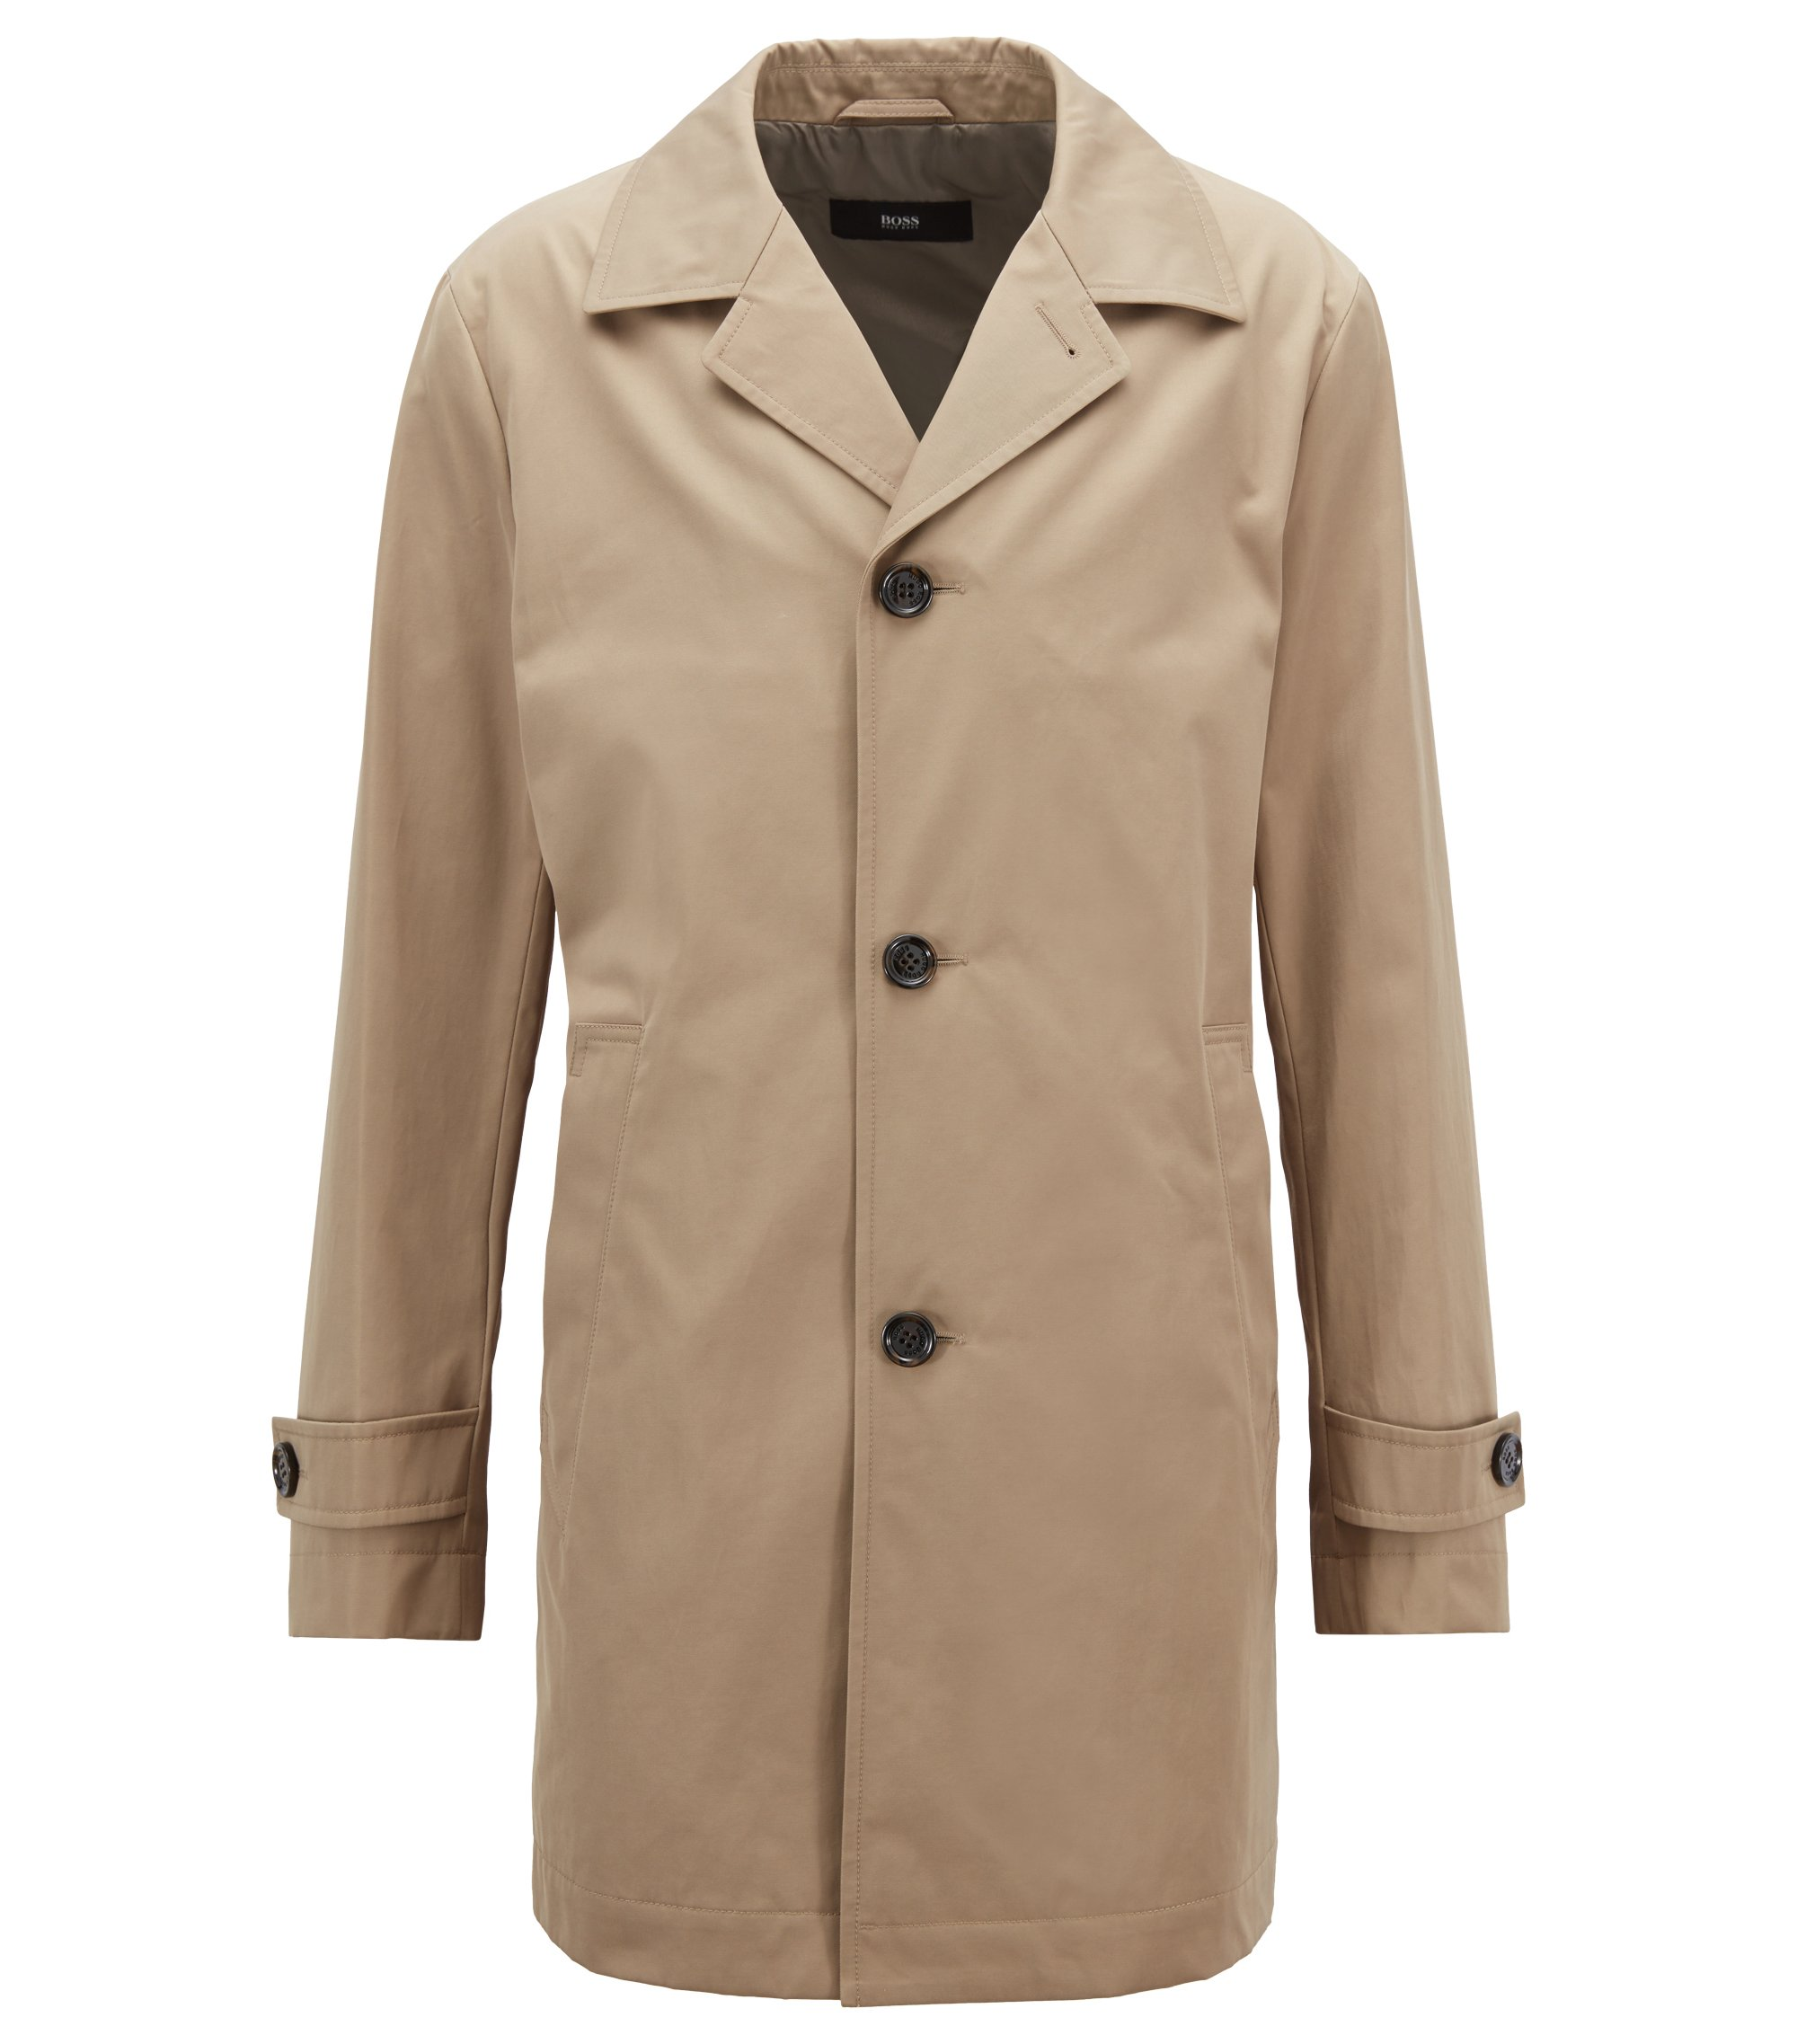 Cappotto idrorepellente in twill tecnico, Beige